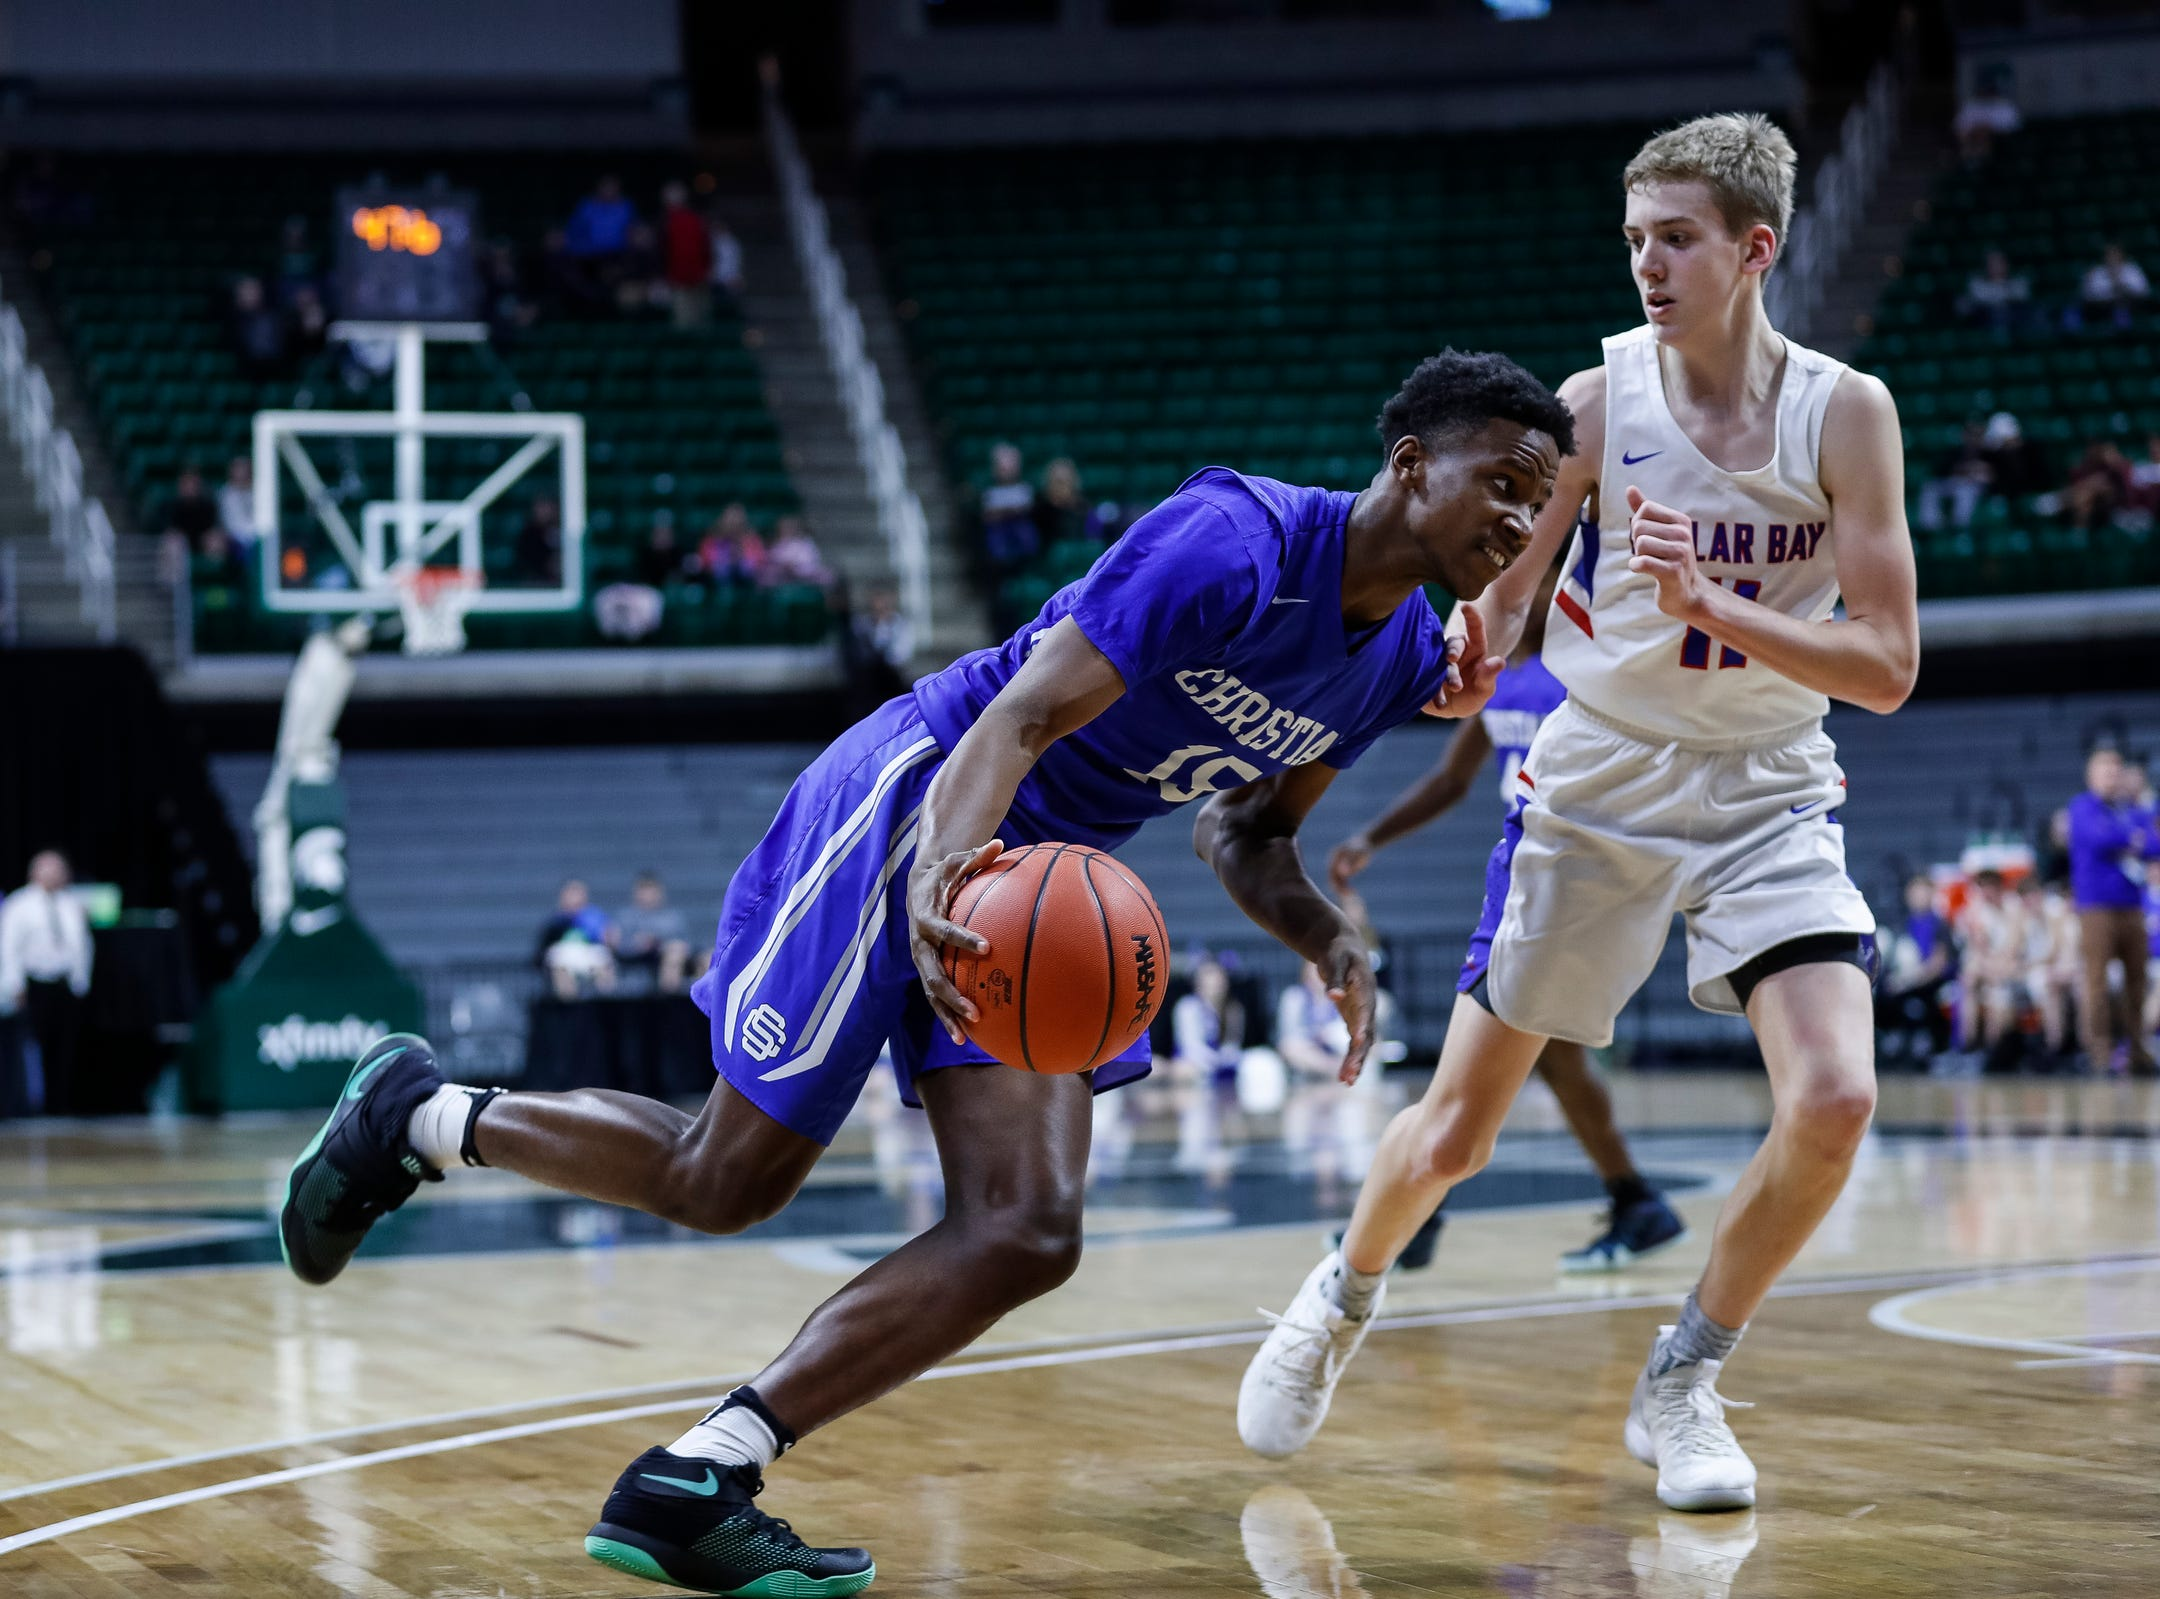 Southfield Christian's Greg Hines (15) dribbles against Dollar Bay's Ashton Janke (11) during the second half of MHSAA Division 4 semifinal at the Breslin Center in East Lansing, Thursday, March 14, 2019.